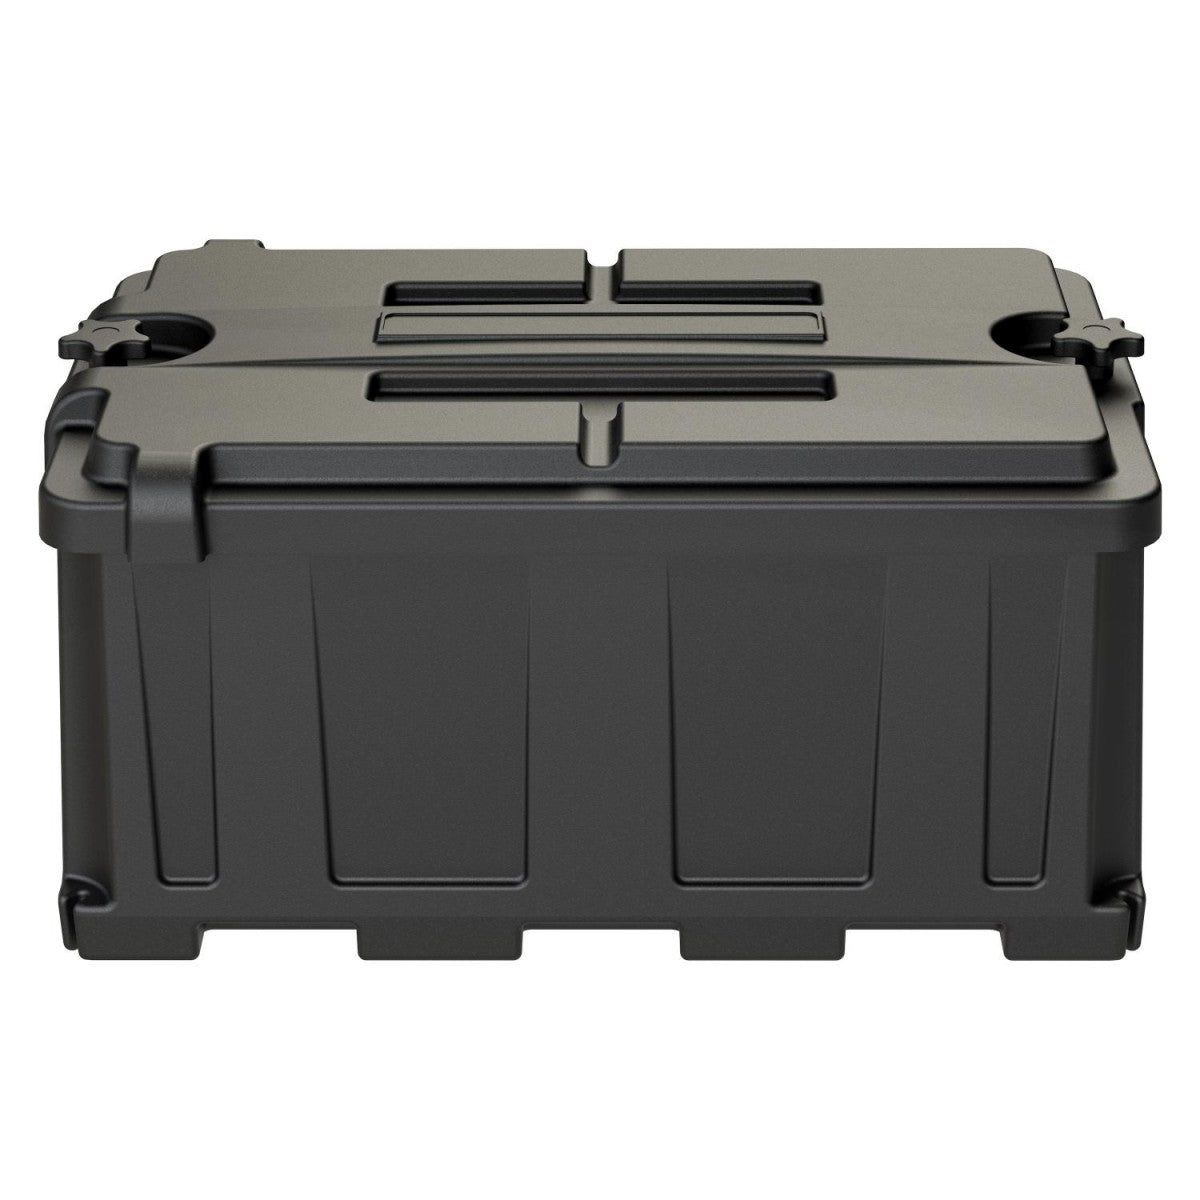 Noco Commercial Grade Heavy Duty Battery Box HM484